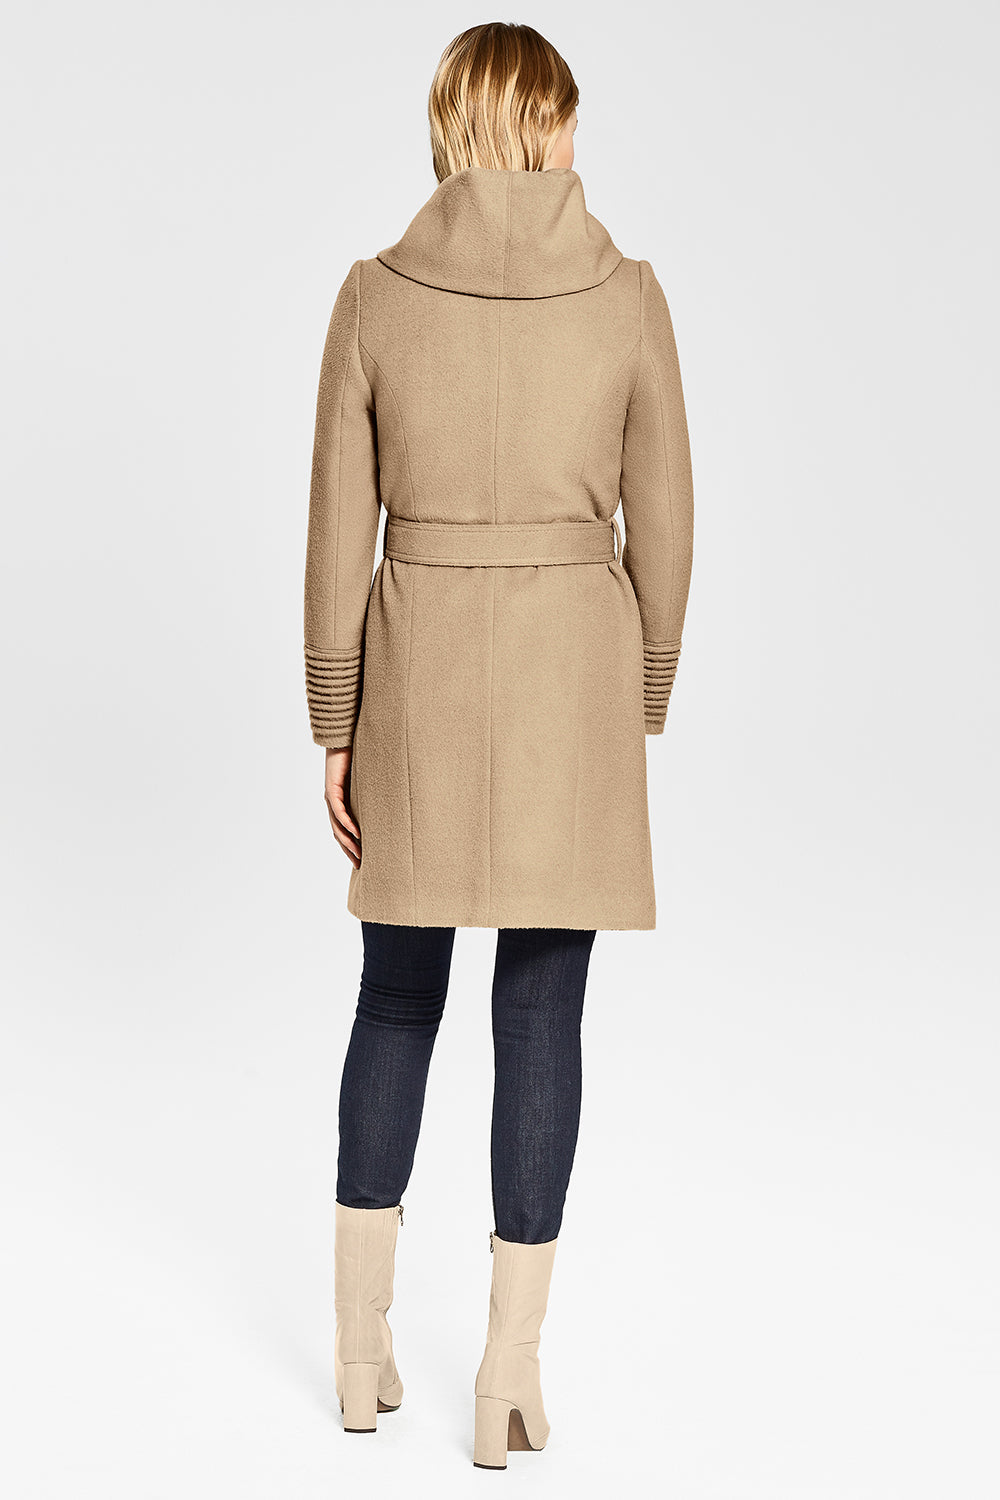 Sentaler Mid Length Hooded Wrap Coat featured in Baby Alpaca and available in Camel. Seen from back.